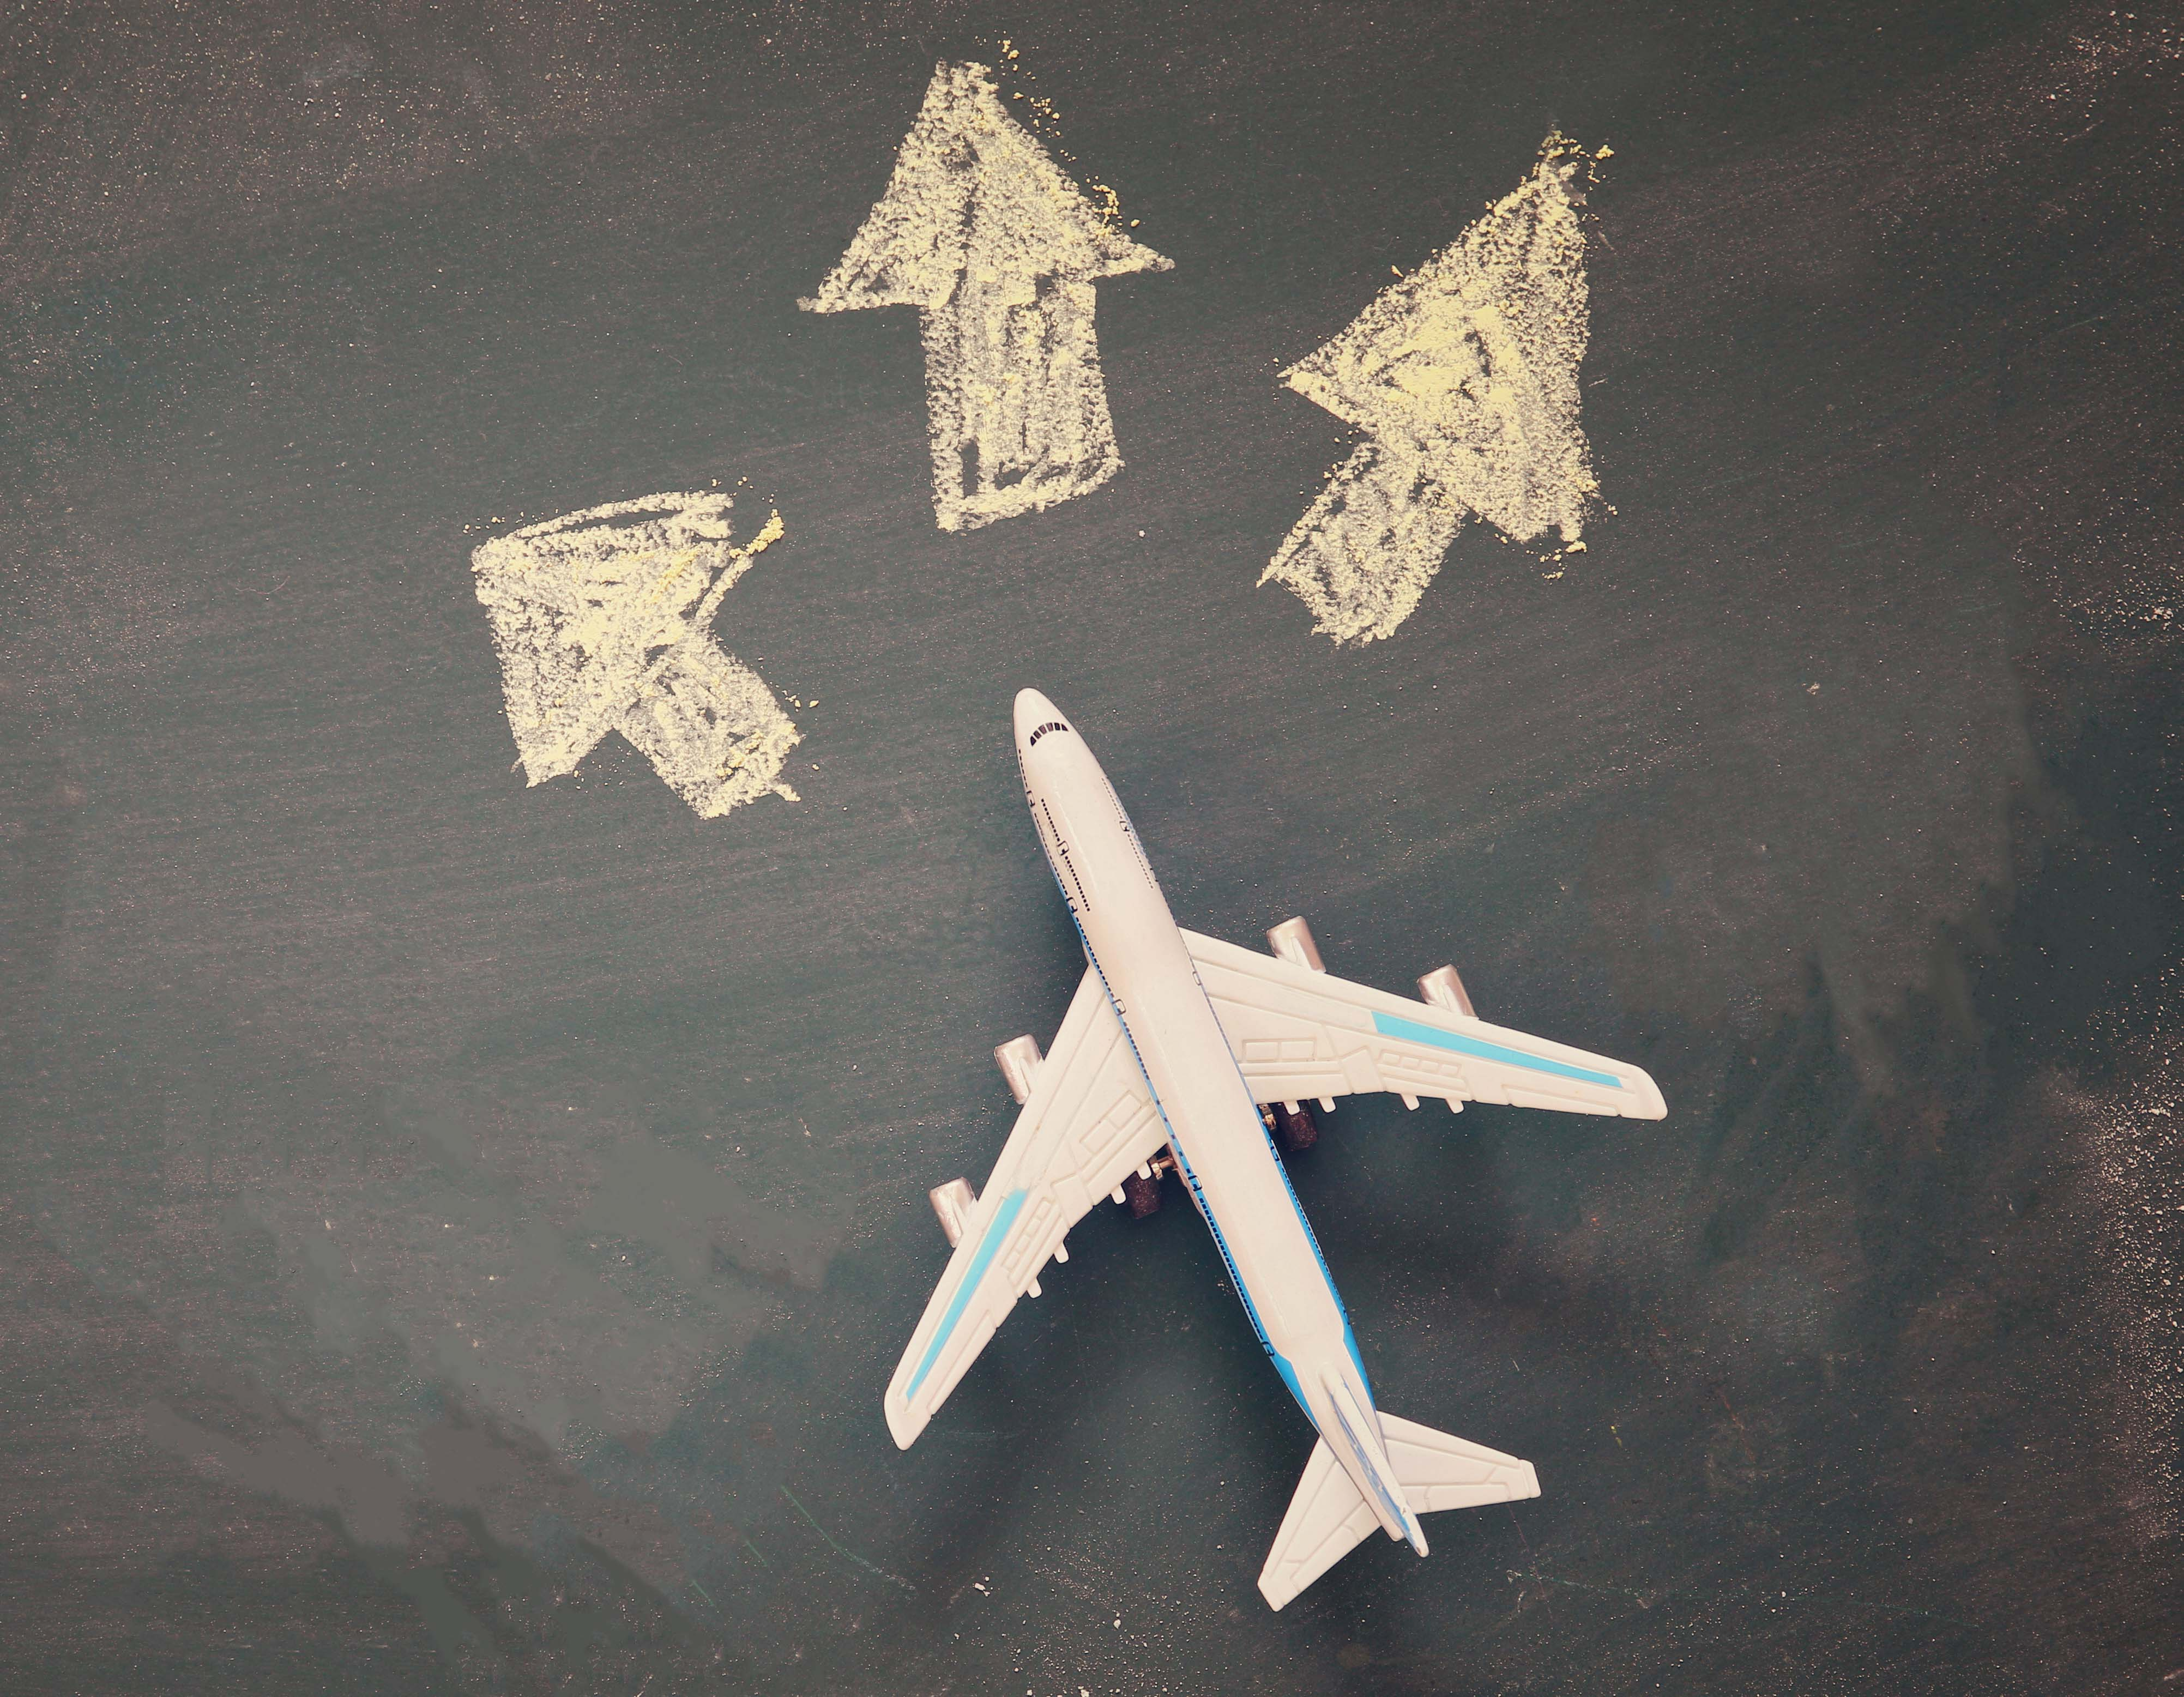 3 Ways to Scale Up Your Flight School to the Next Level - Featured Image